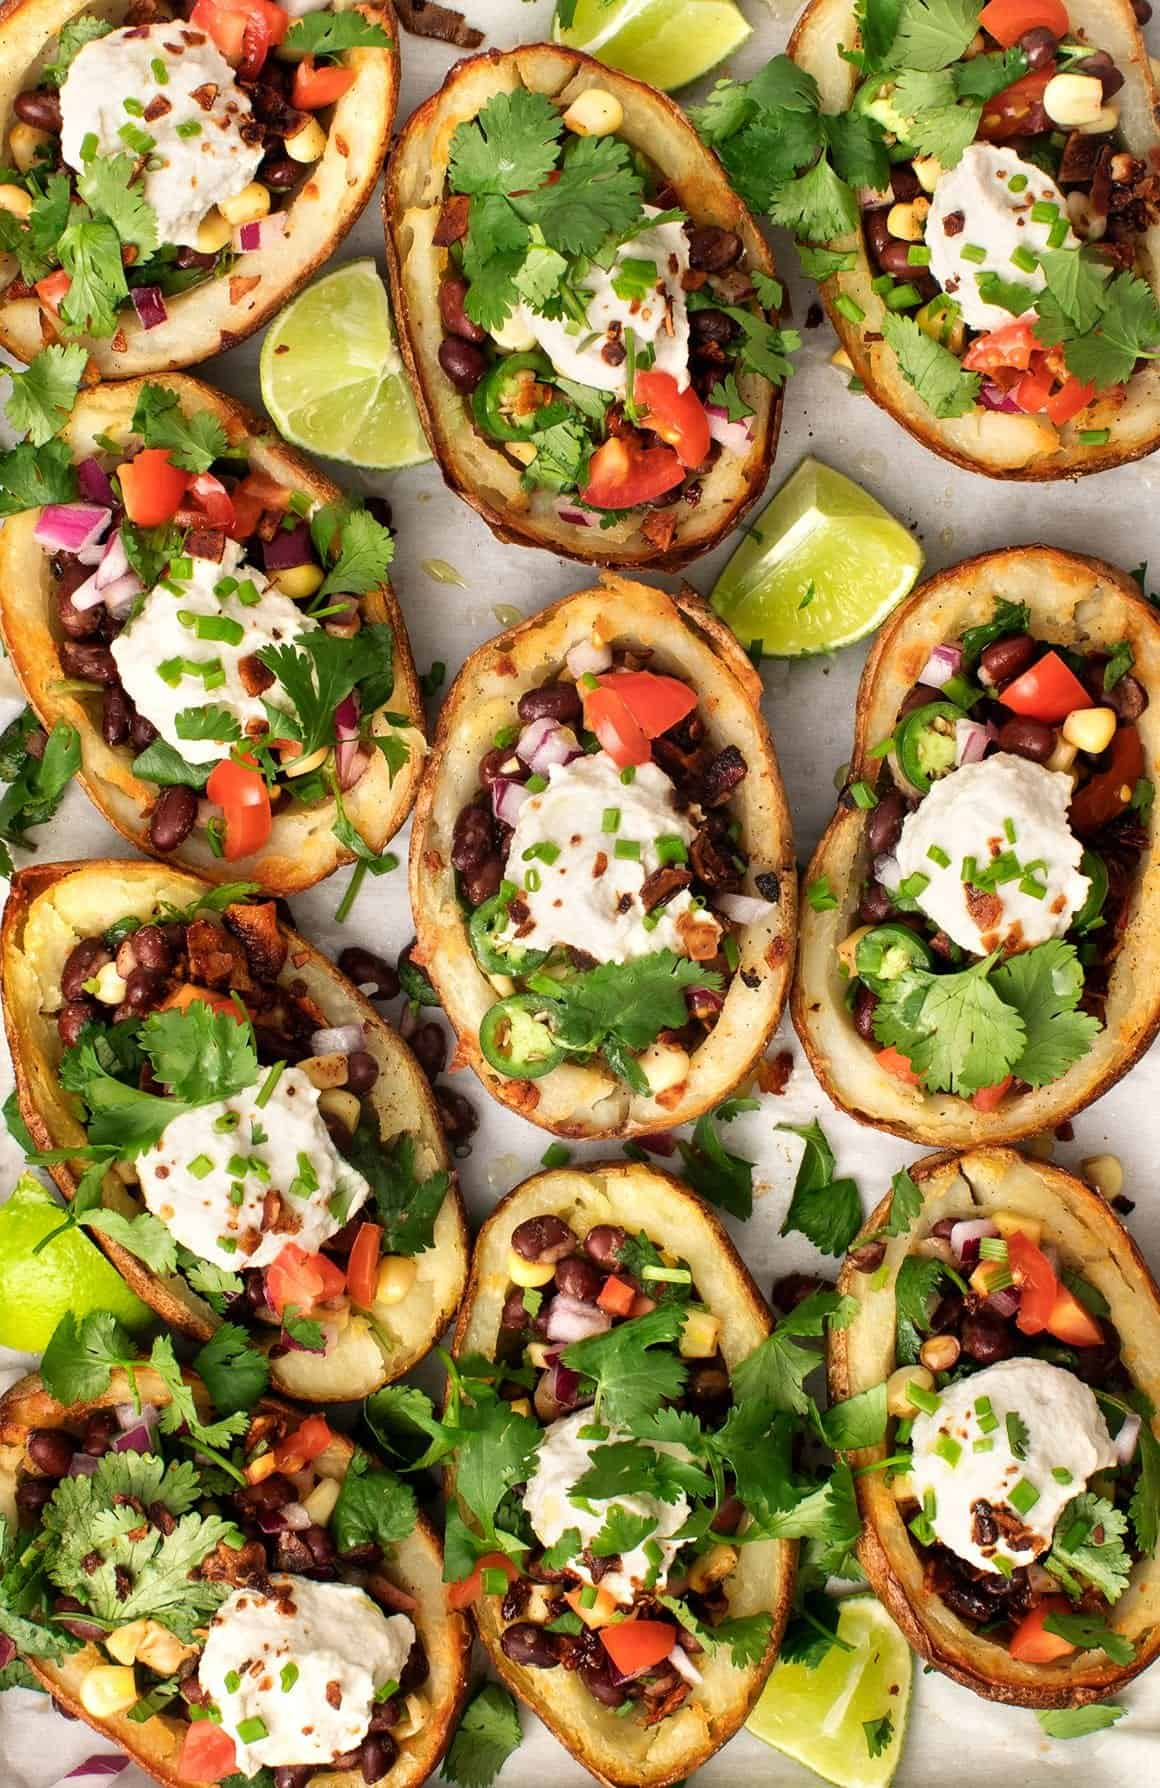 Healthier Vegan Stuffed Potato Skins Recipe